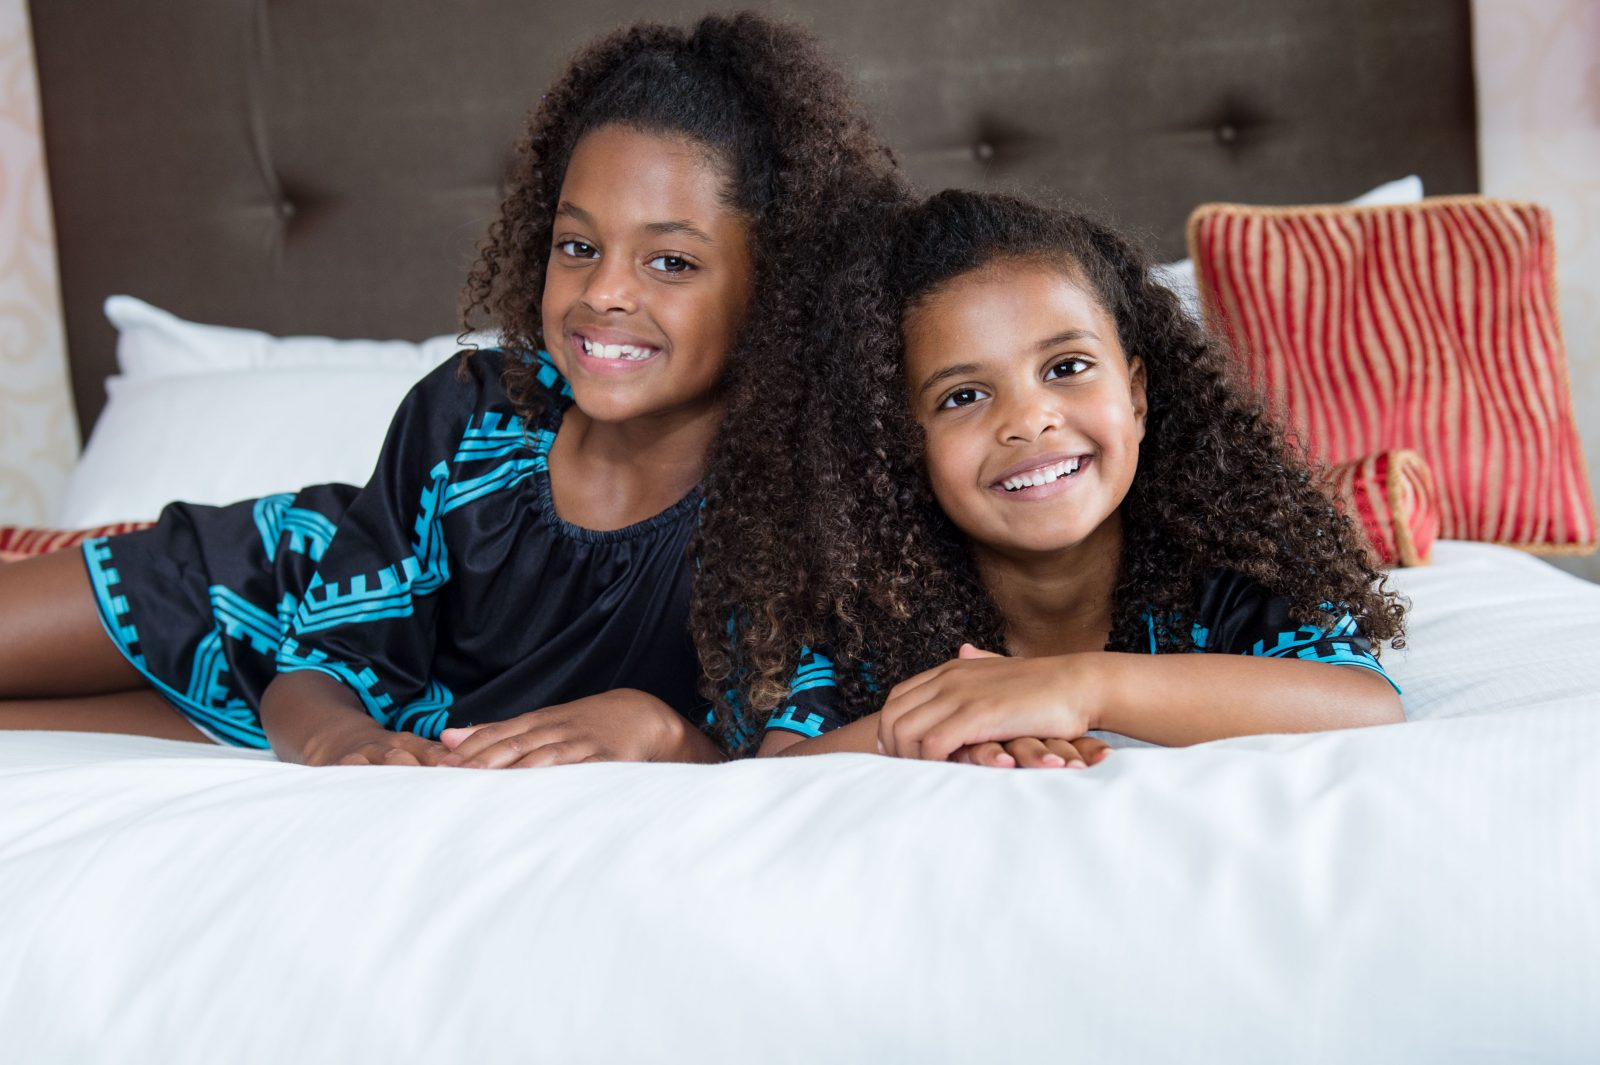 Maintaining kid's naturally curly hair